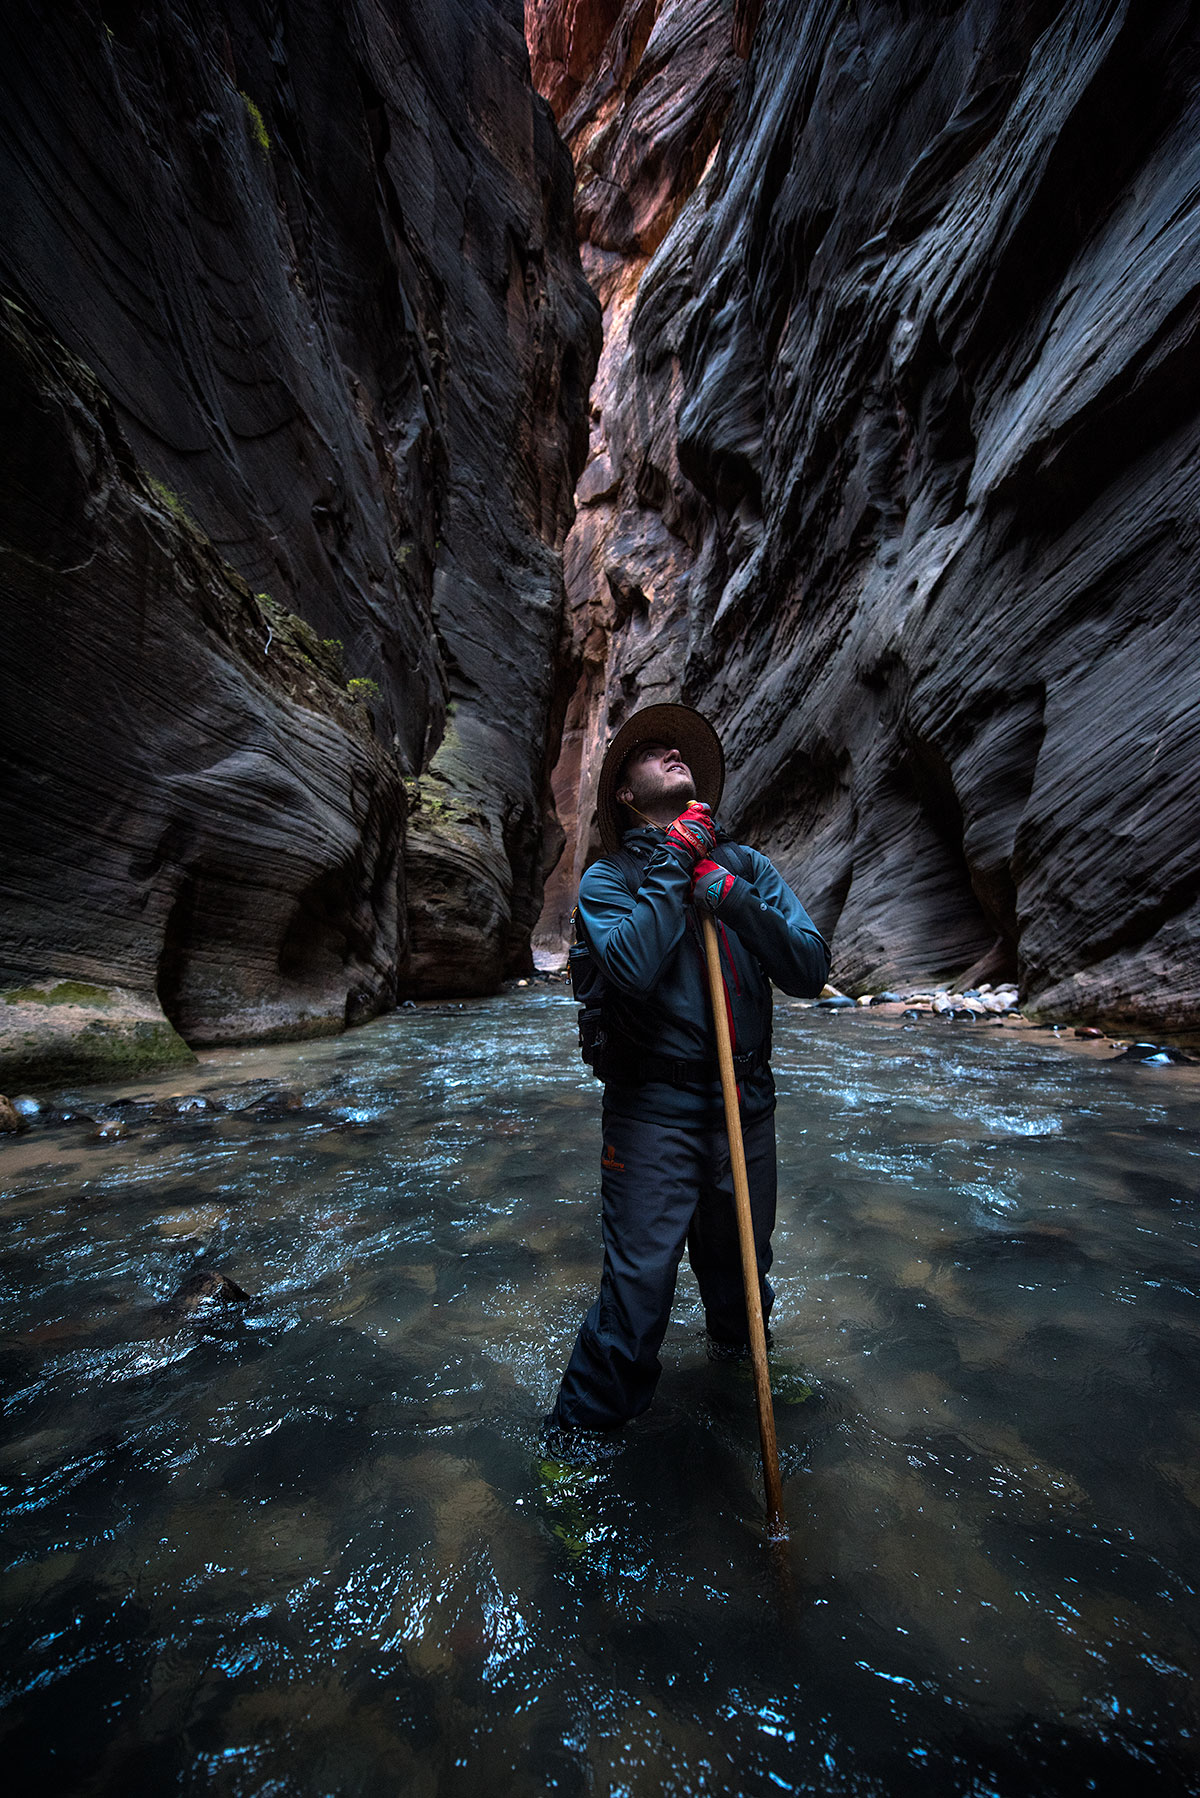 austin-trigg-brave-wilderness-utah-zion-Kost-Narrows-canyon-walls-river.jpg